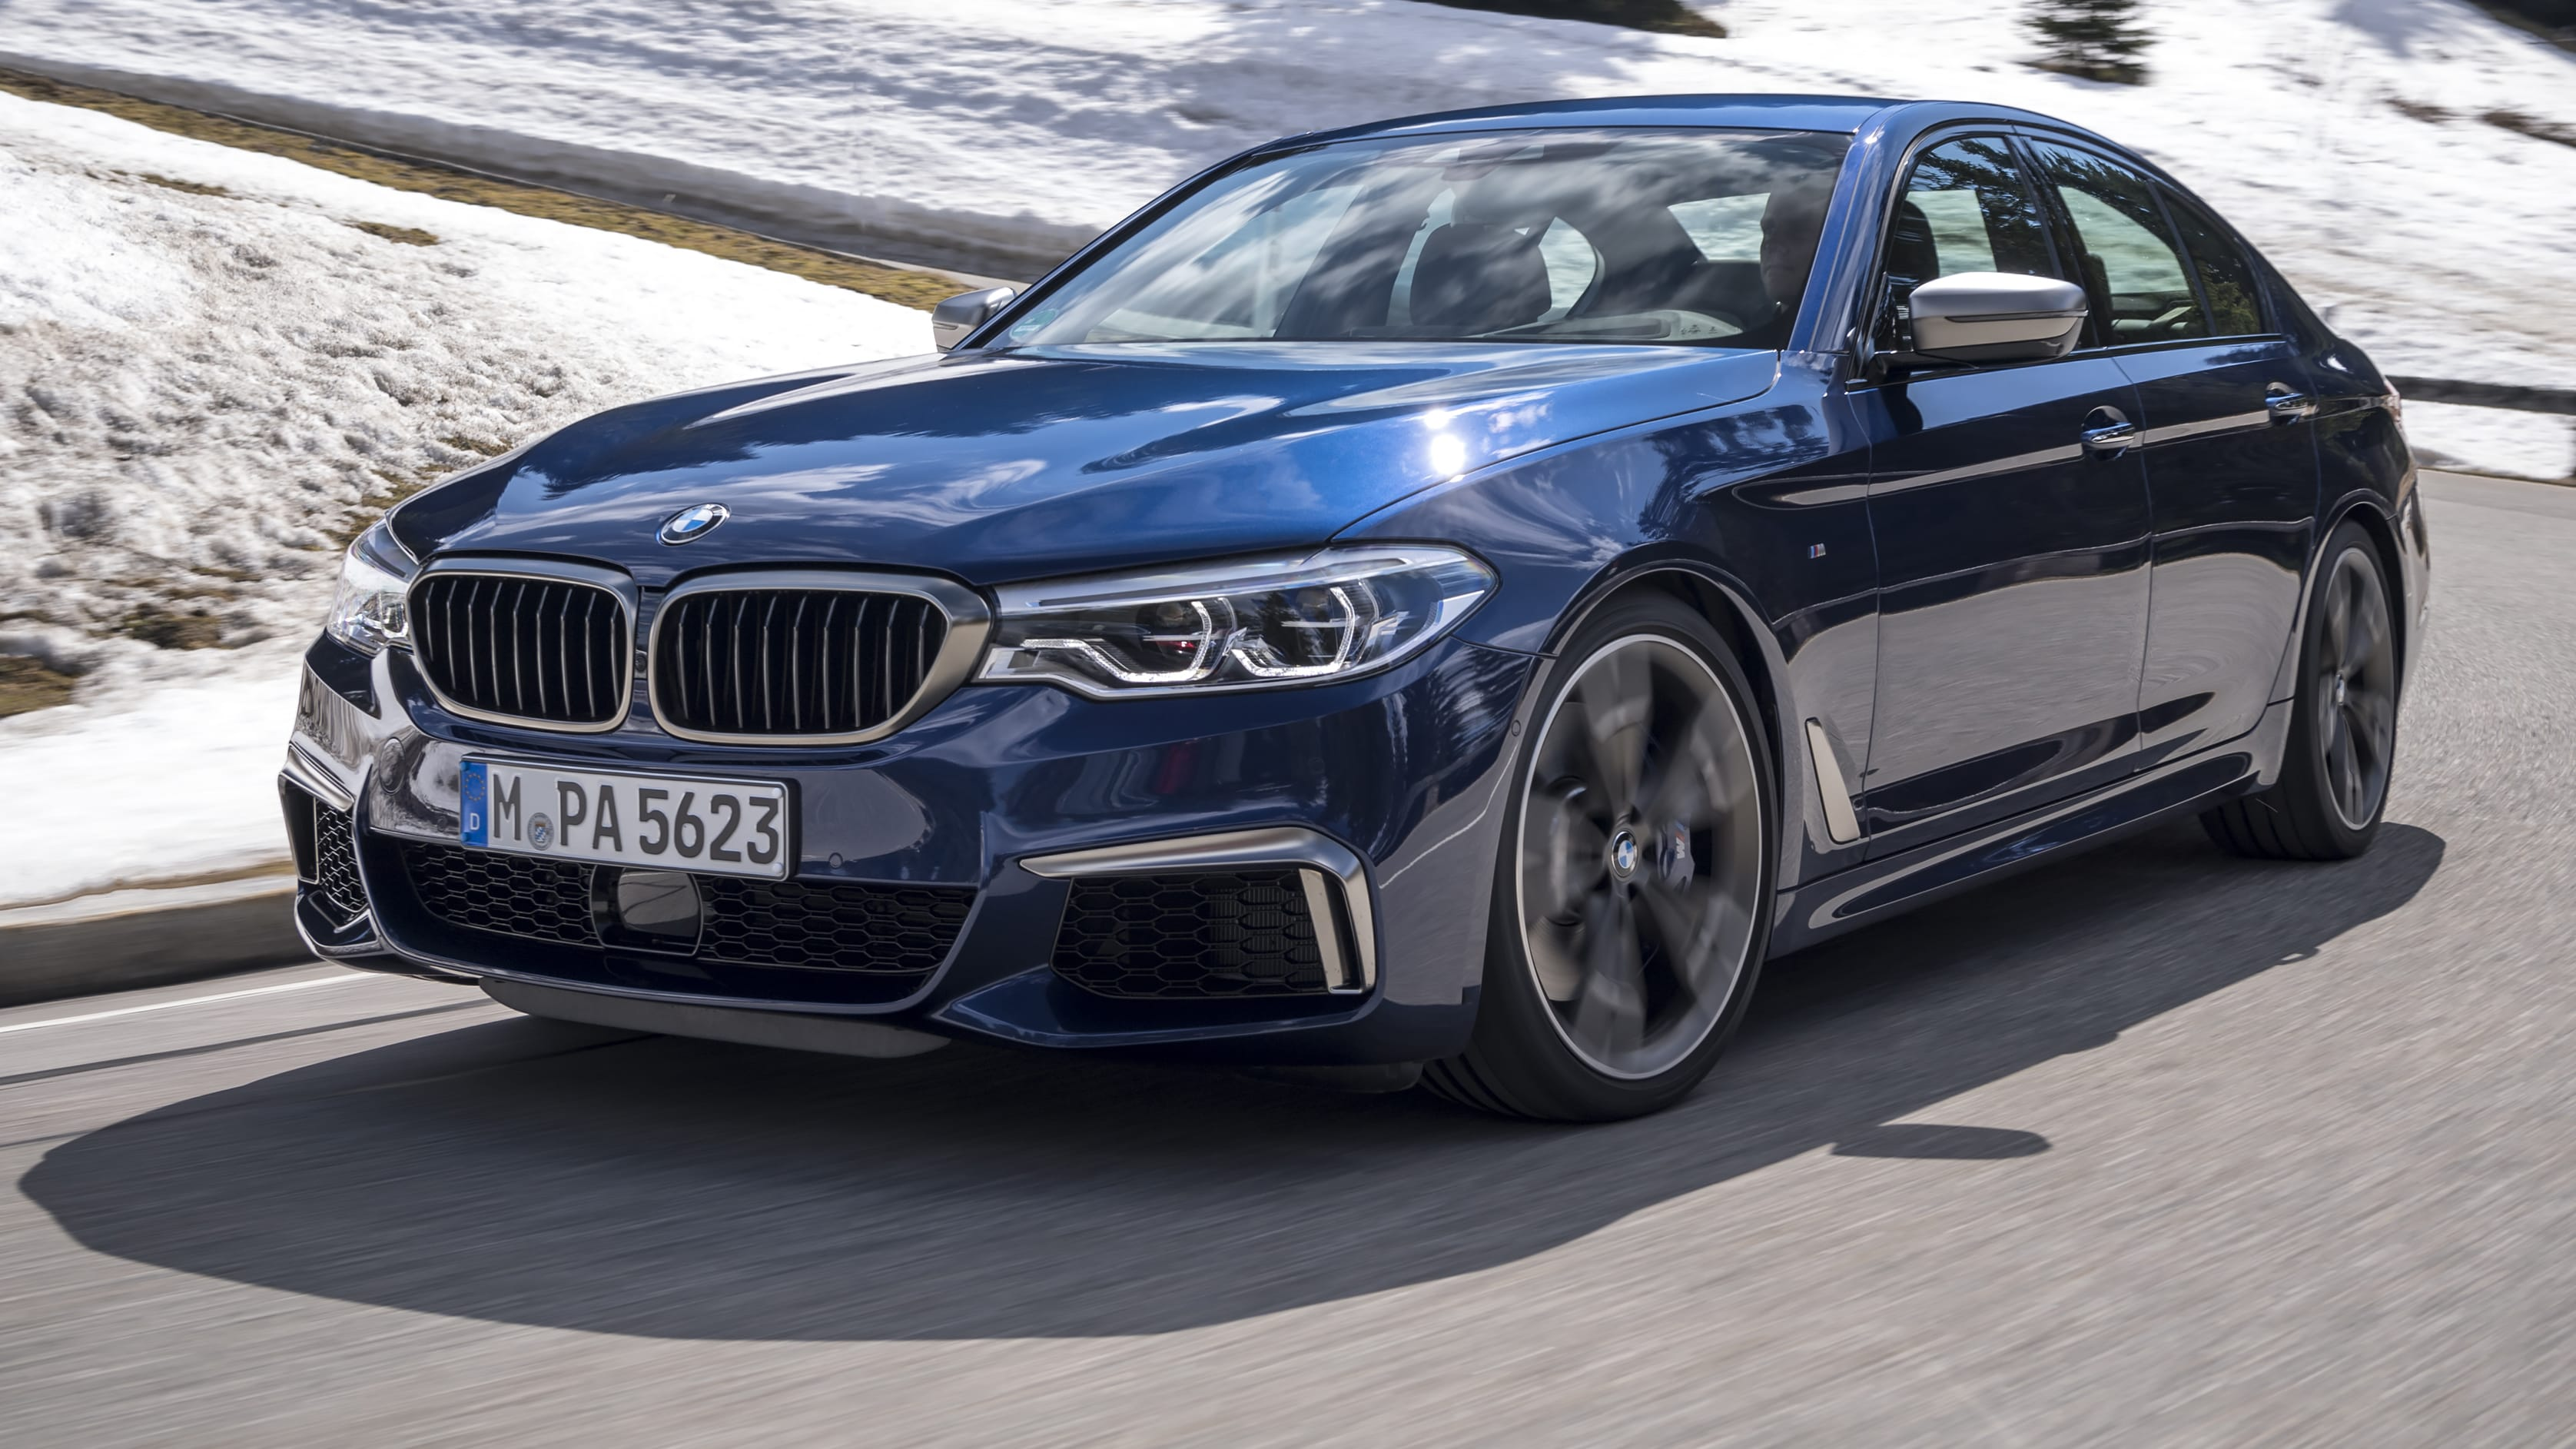 2020 bmw m550i pure v8 sedan priced from 134 900 caradvice 2020 bmw m550i pure v8 sedan priced